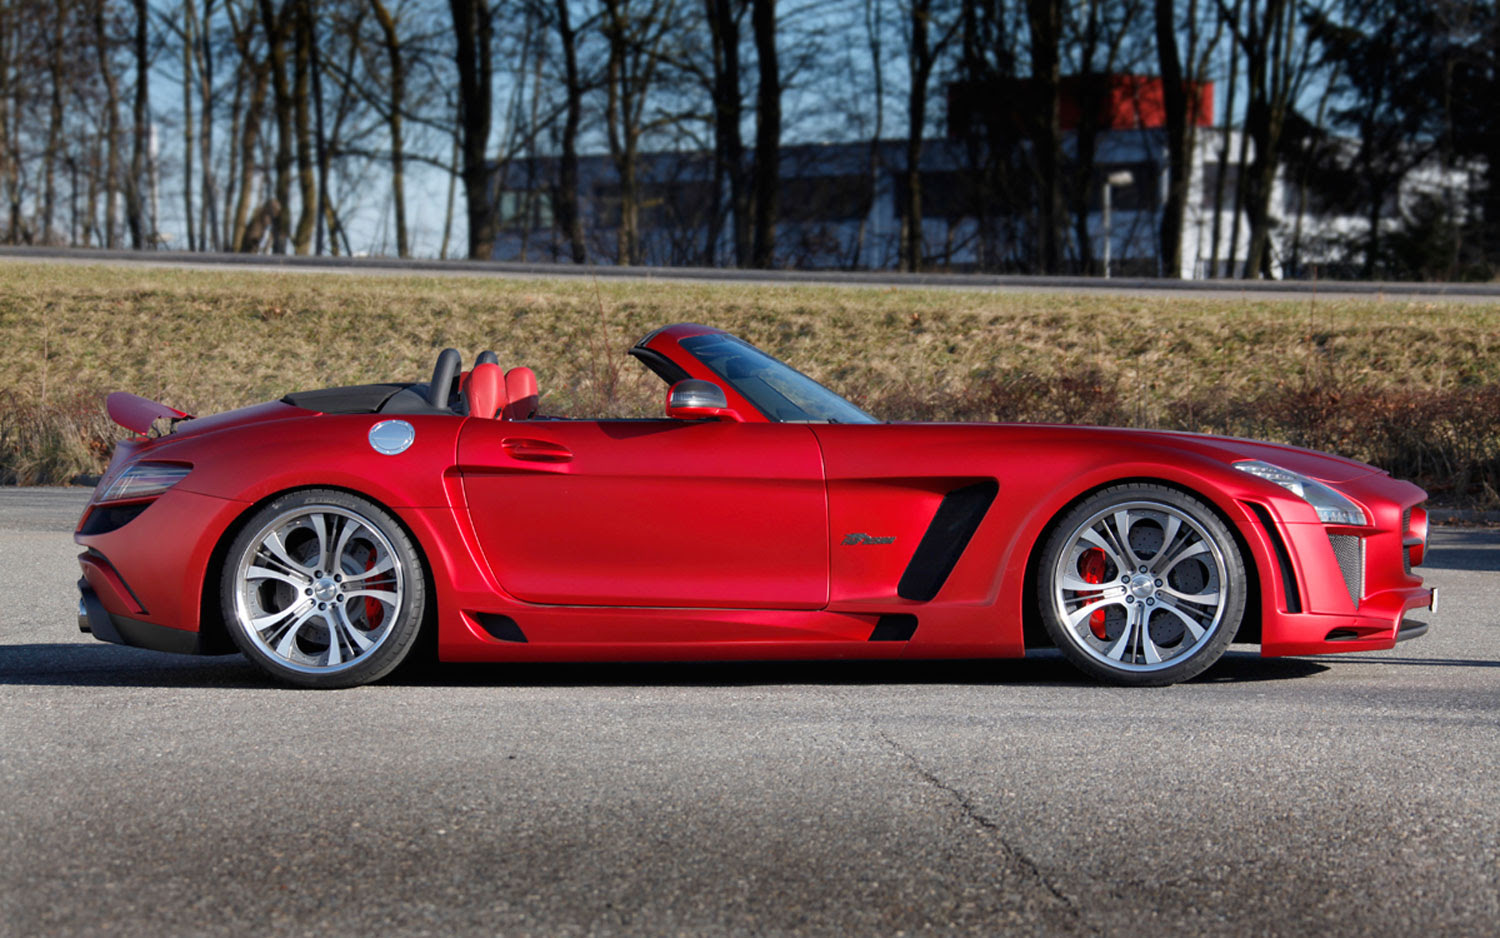 Fab Design Takes Mercedes-Benz SLS AMG Roadster Over the Top